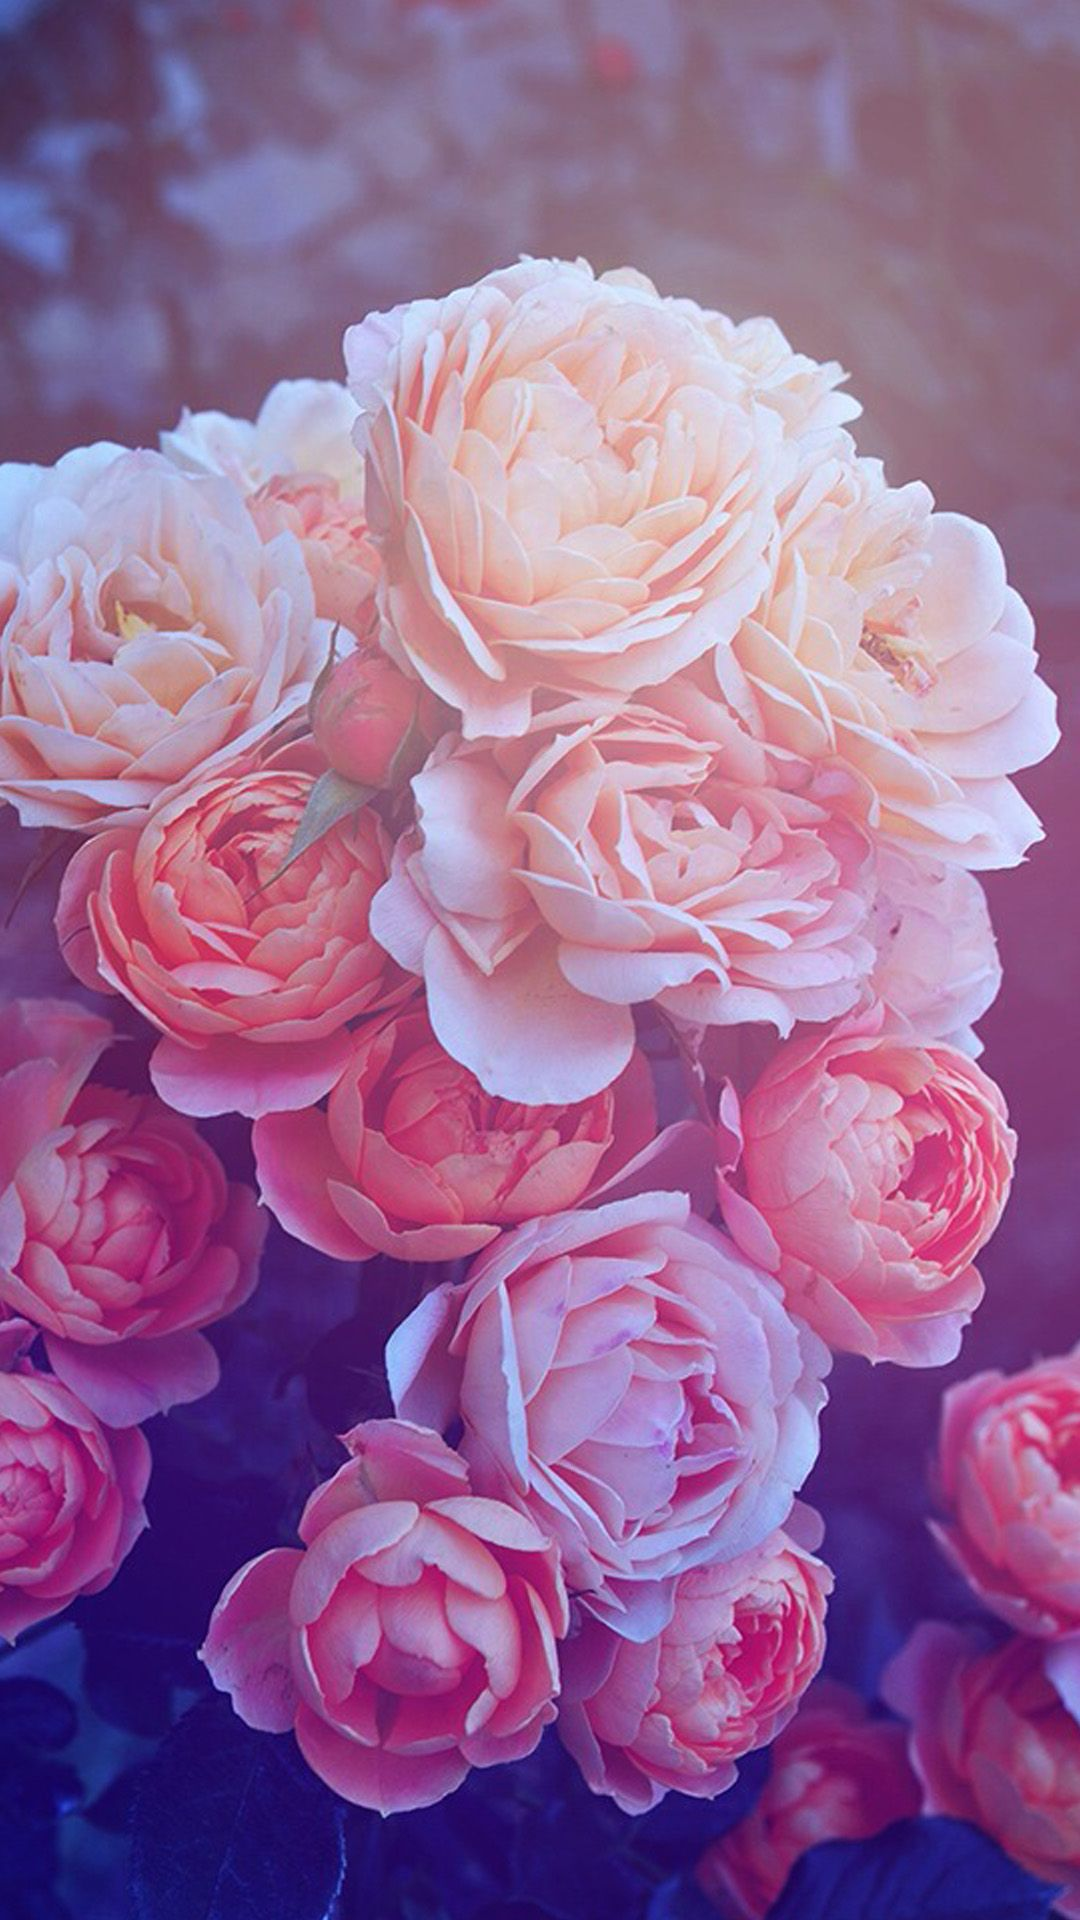 Wallpaper iphone beautiful - Pink Galaxy Iphone Wallpaper Beautiful Pink Roses